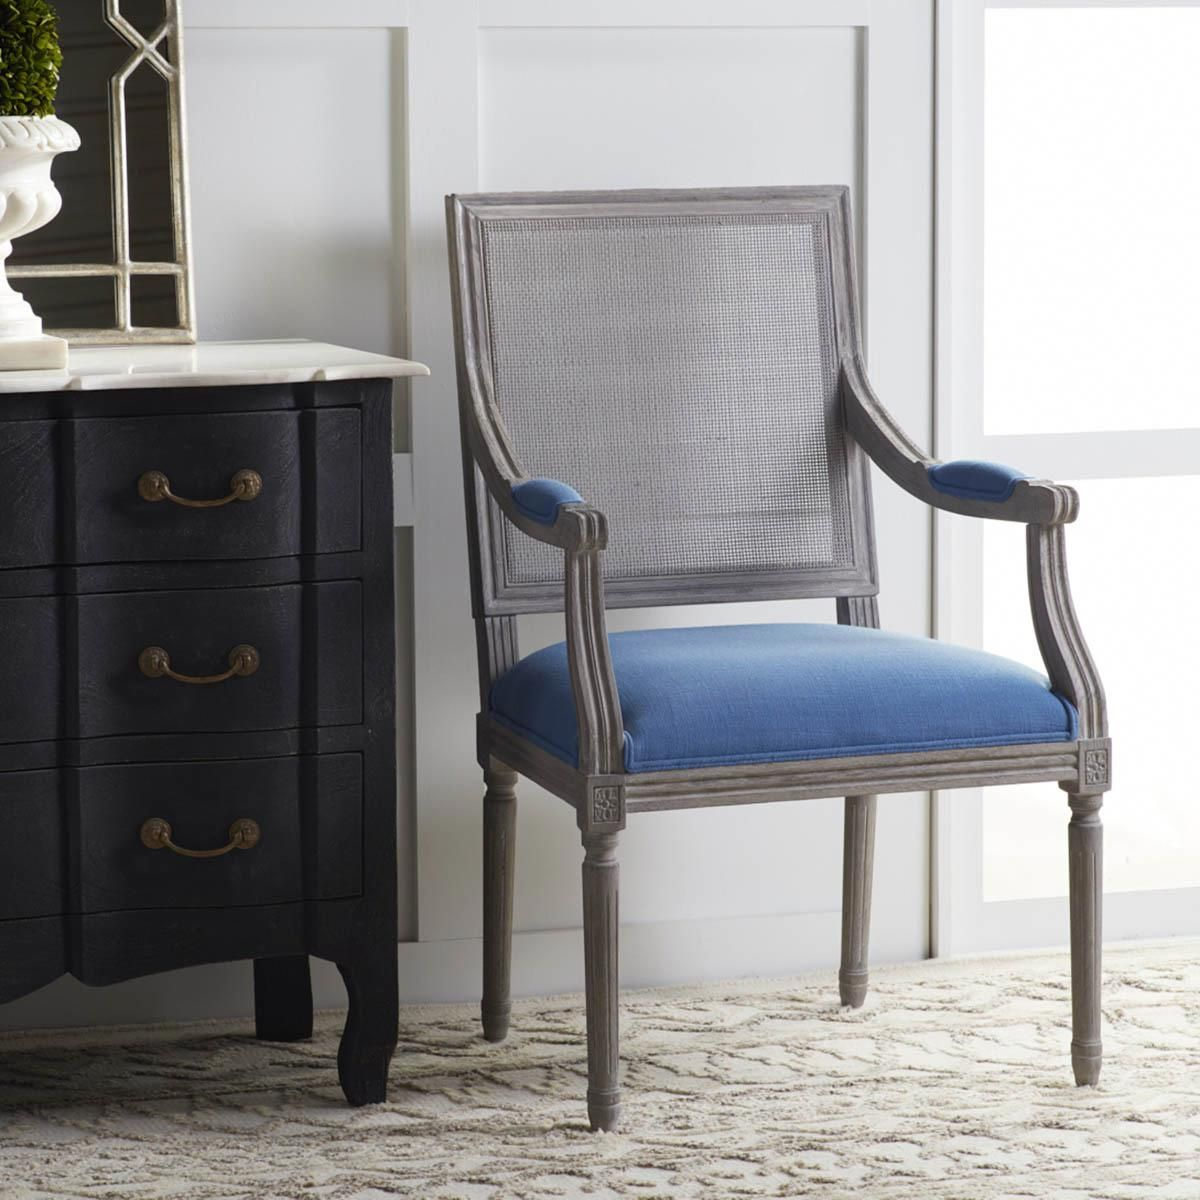 Formal Living Room Accent Chairs LowerBackPainProducts